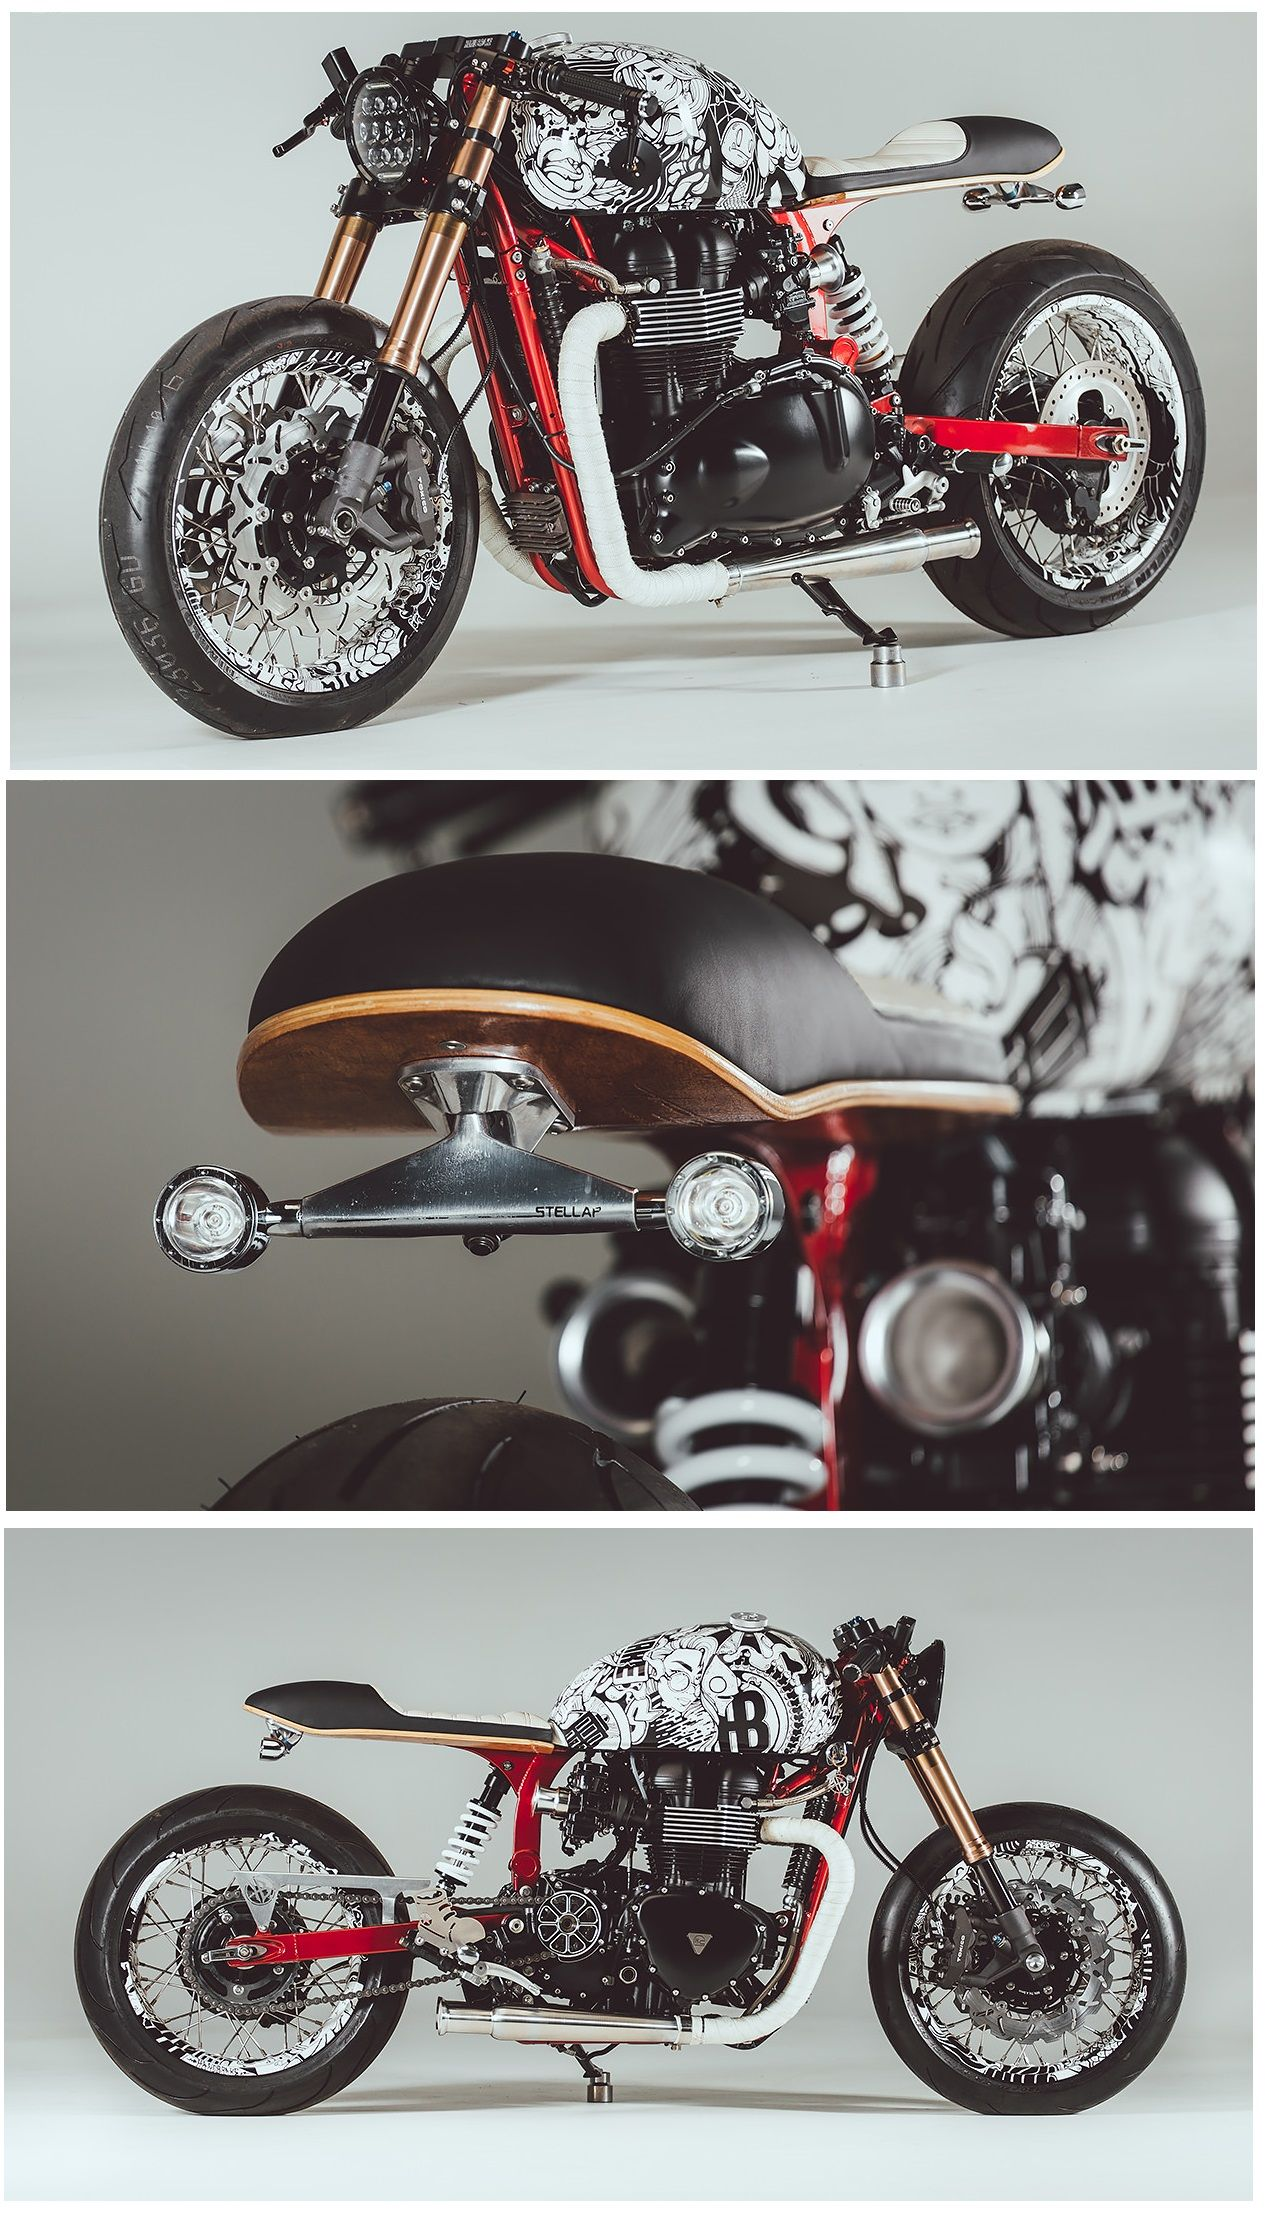 A Stunning Triumph Thruxton Cafe Racer Built By Rogue Motorcycles